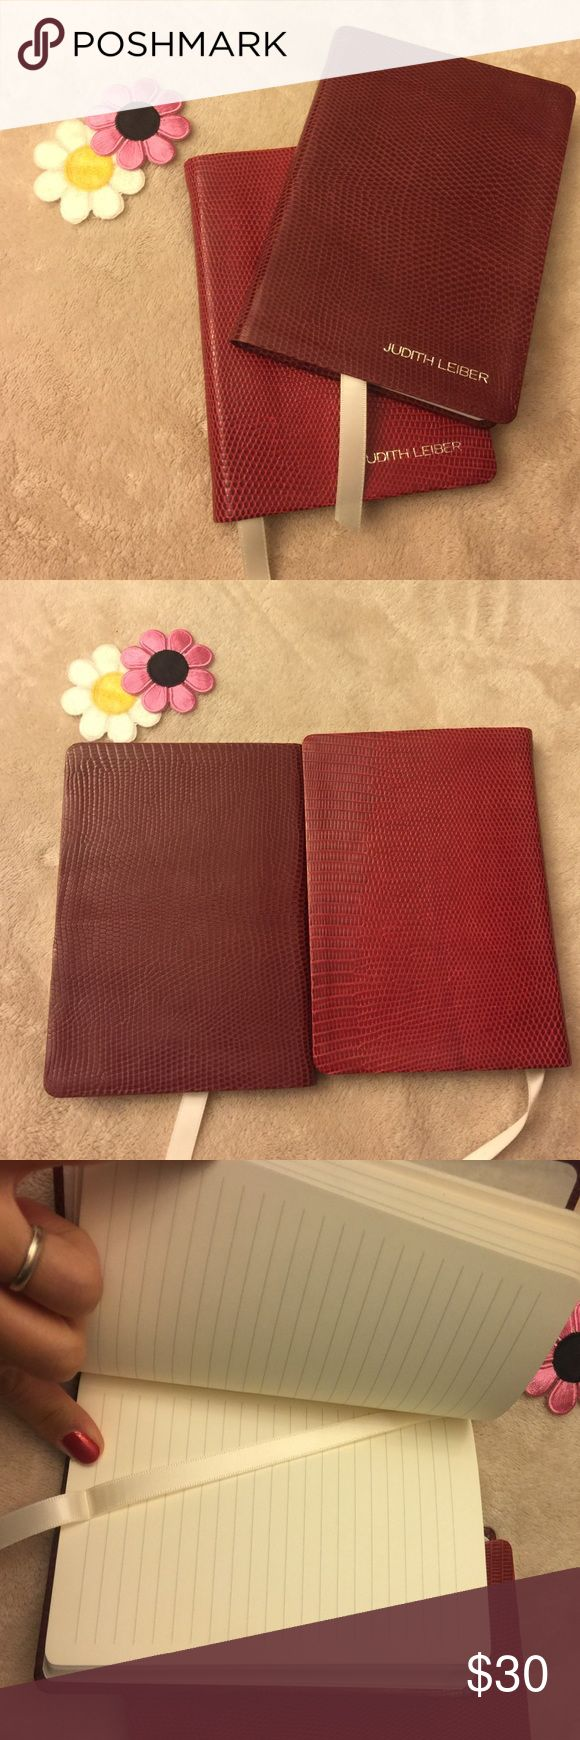 📚New Judith Leiber notebooks📚 Brand new notebooks. Price is for 2 notebooks. If you would like to purchase 1, I will create a new listing.  Price for 1 is $18. Made with authentic exotic skin (just not sure what kind). Notebook printed and bound in the US. Accessories